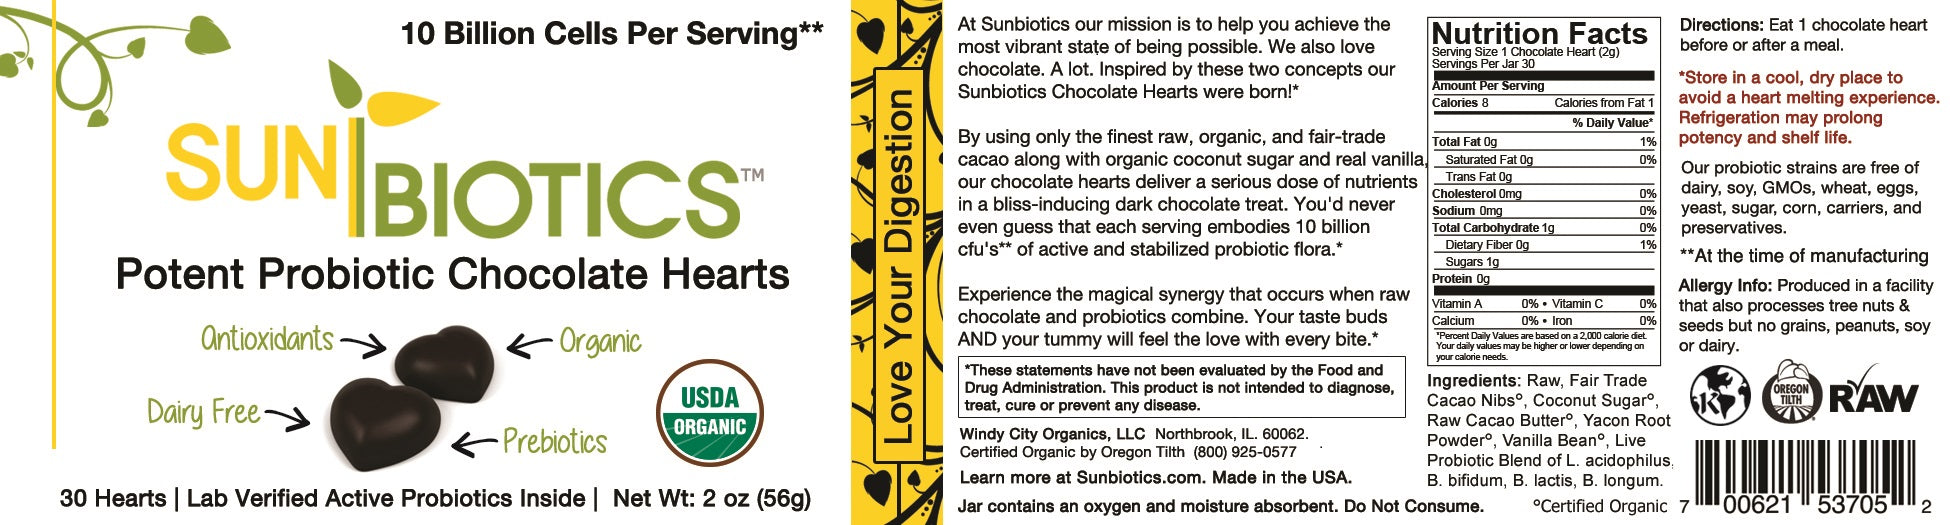 Potent Probiotic Chocolate Hearts Size: 30